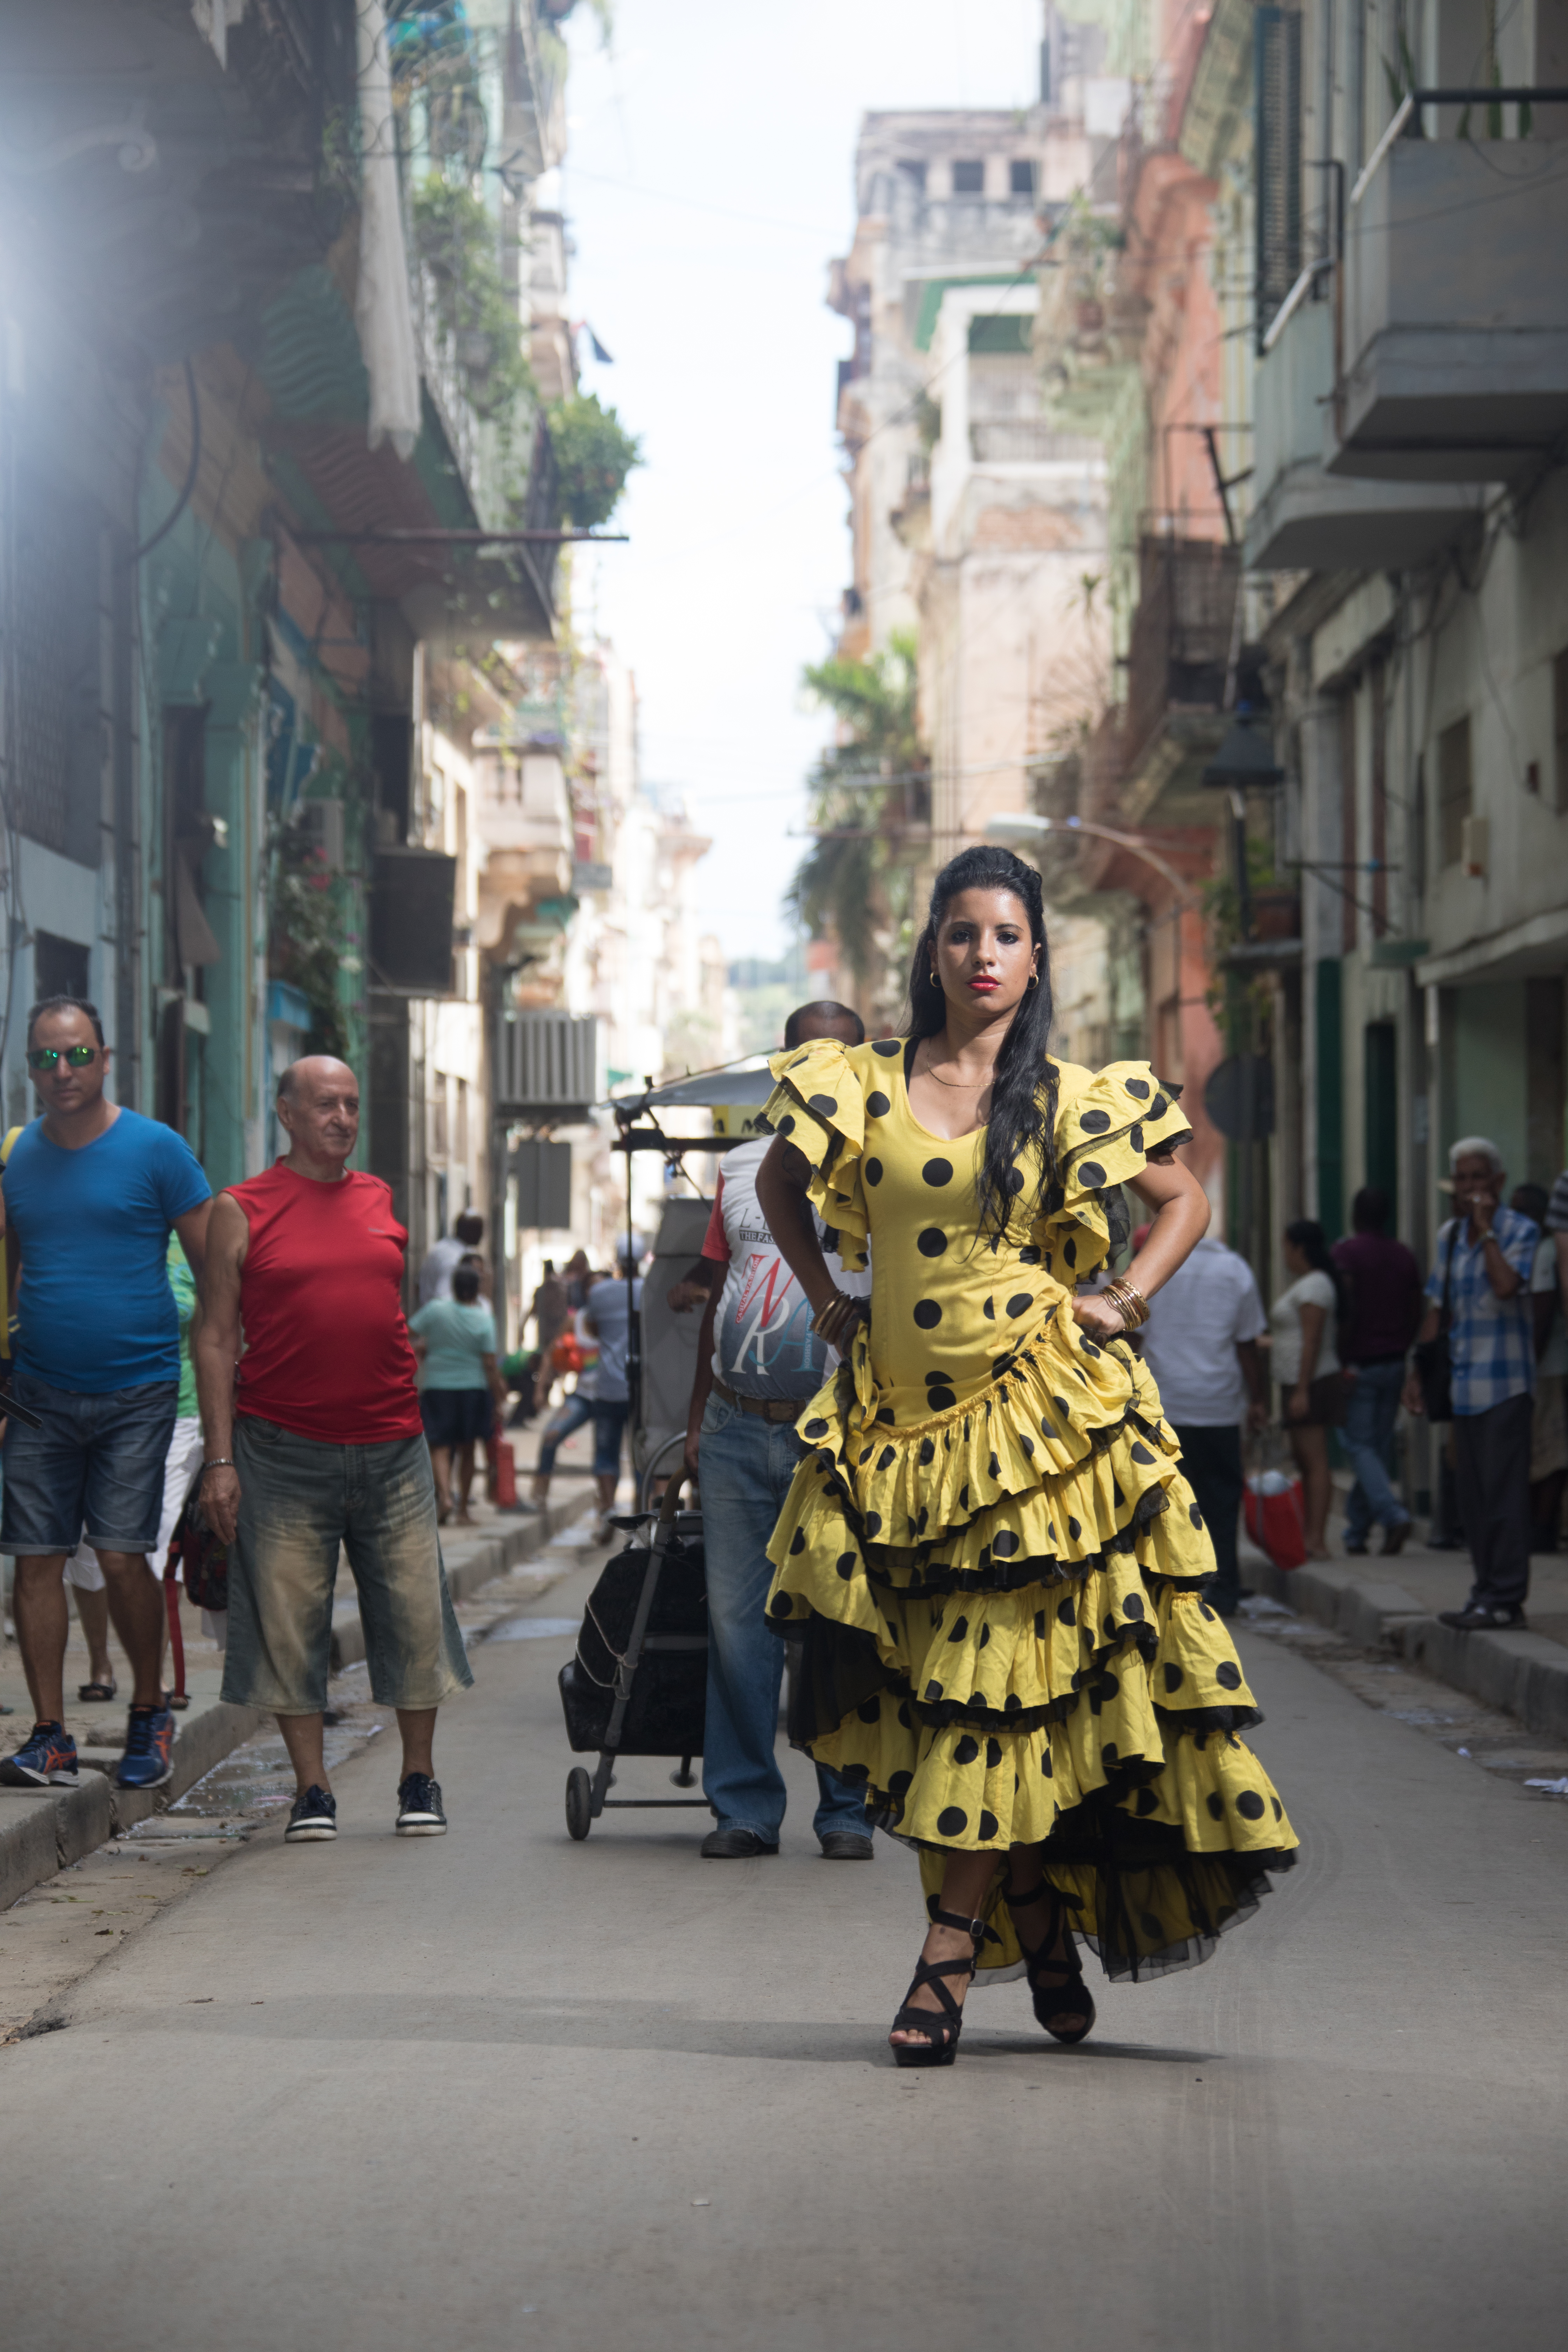 2017 Travel To Cuba July 2017 Travel To Cuba With The San Francisco Rueda Festival